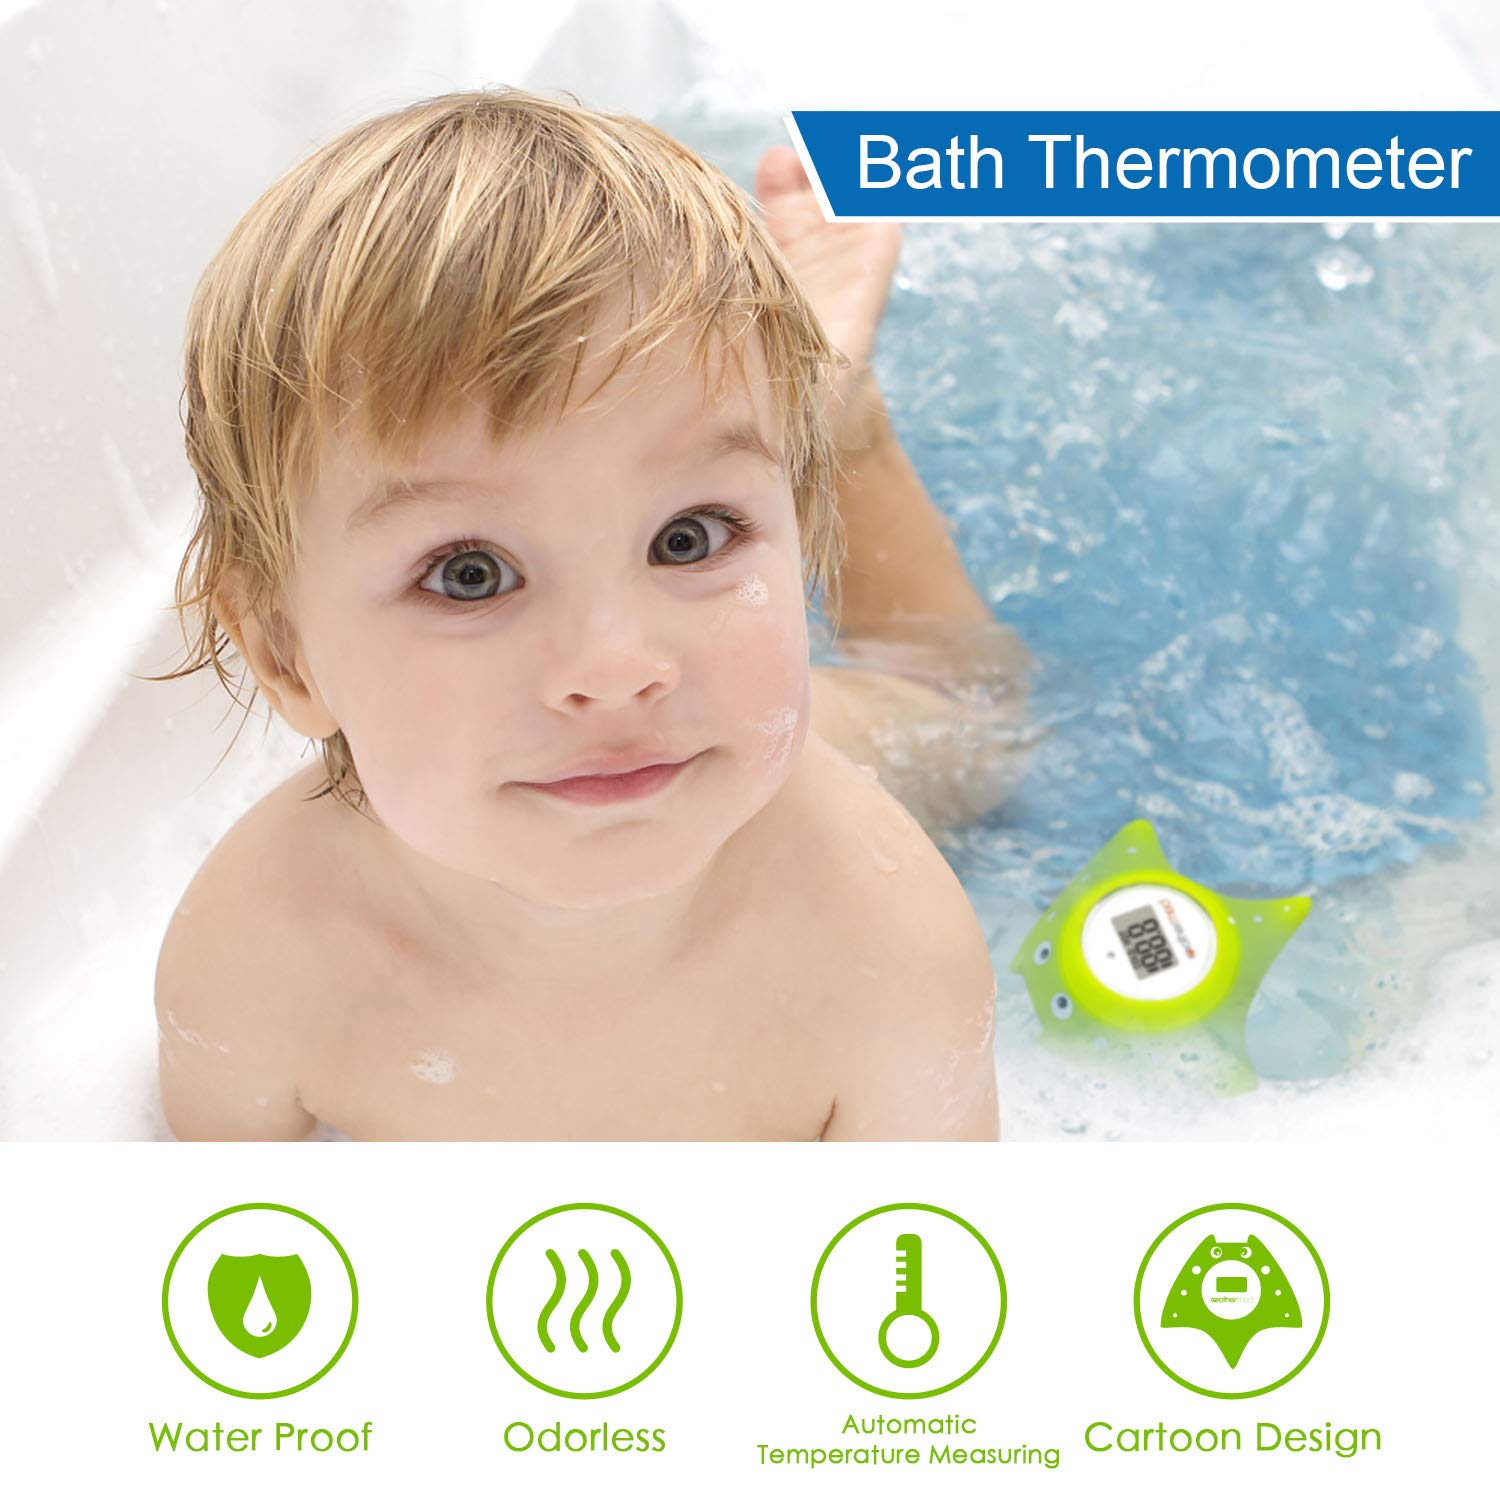 4589e5146 Mothermed Baby Bath Thermometer and Floating Bath Toy Bathtub and Swimming  Pool Thermometer Green Fish: Amazon.co.uk: Baby